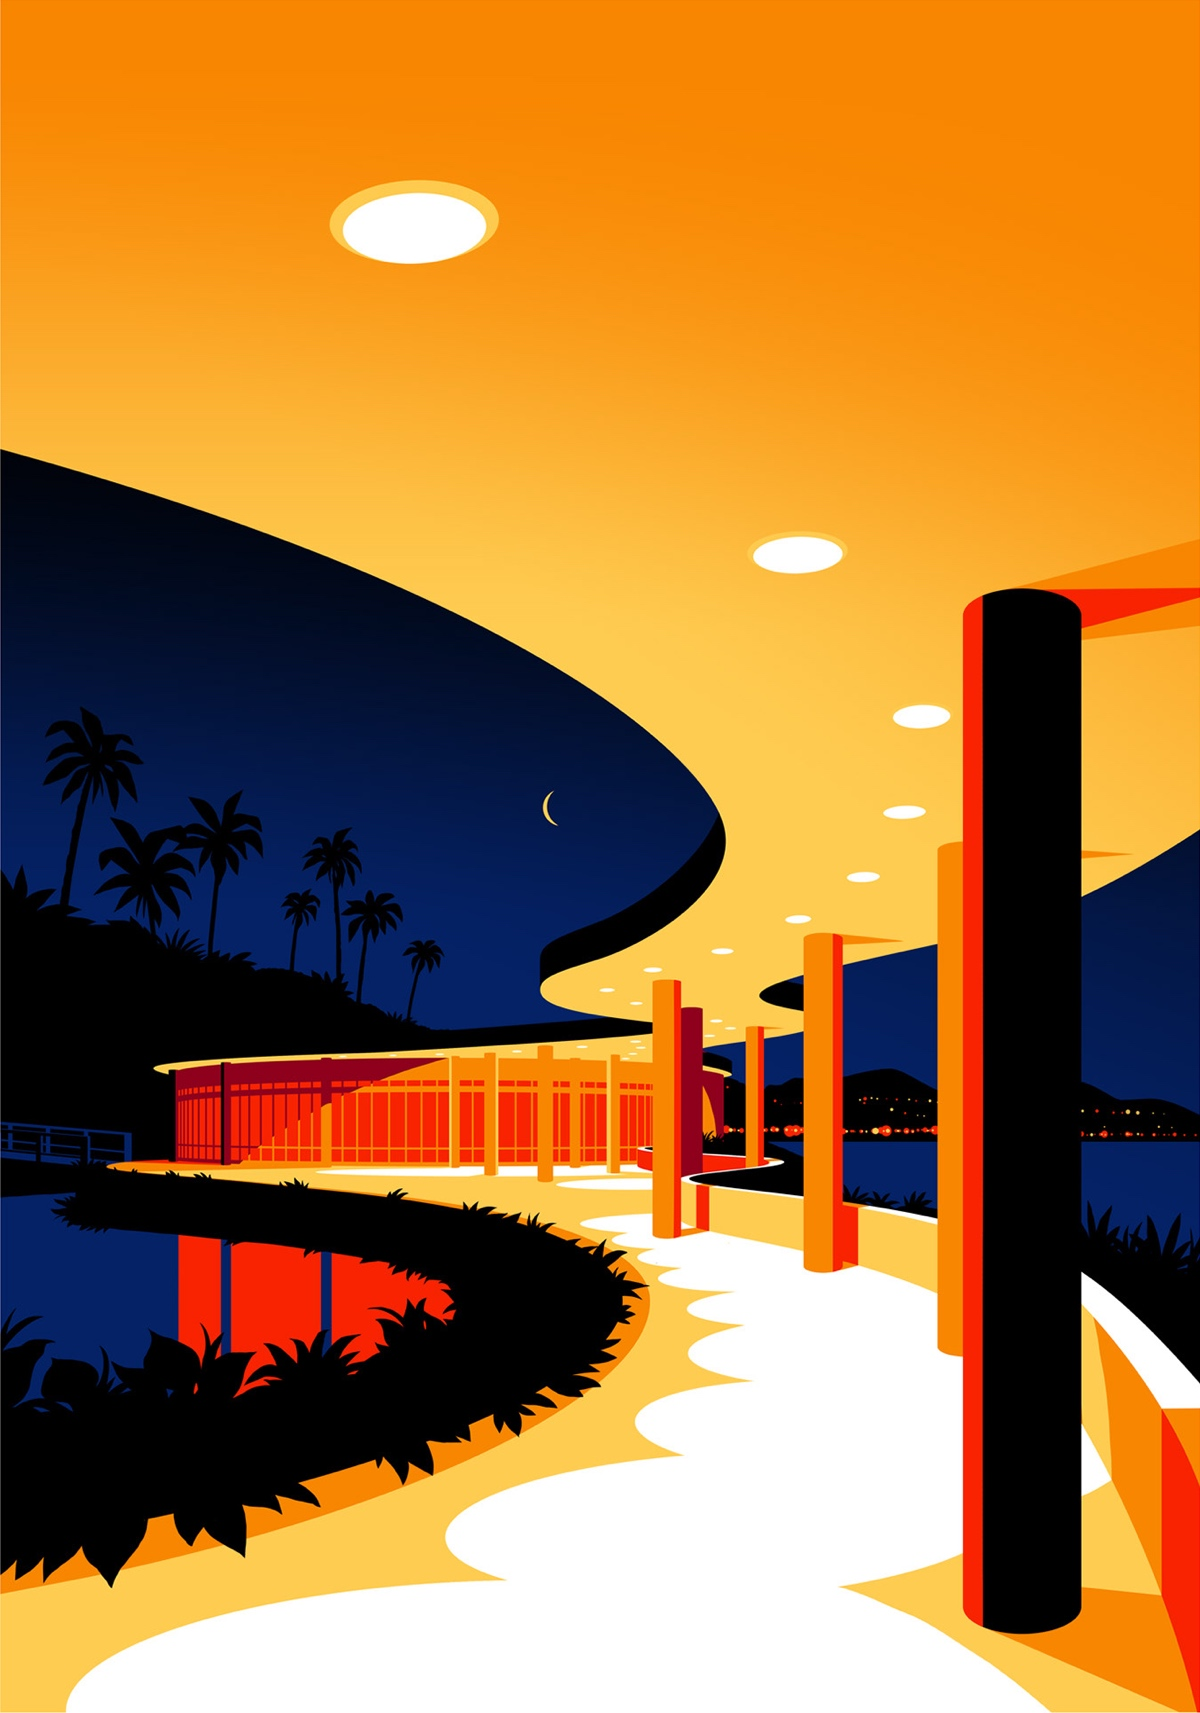 Architecture Illustration by Levente Szabo